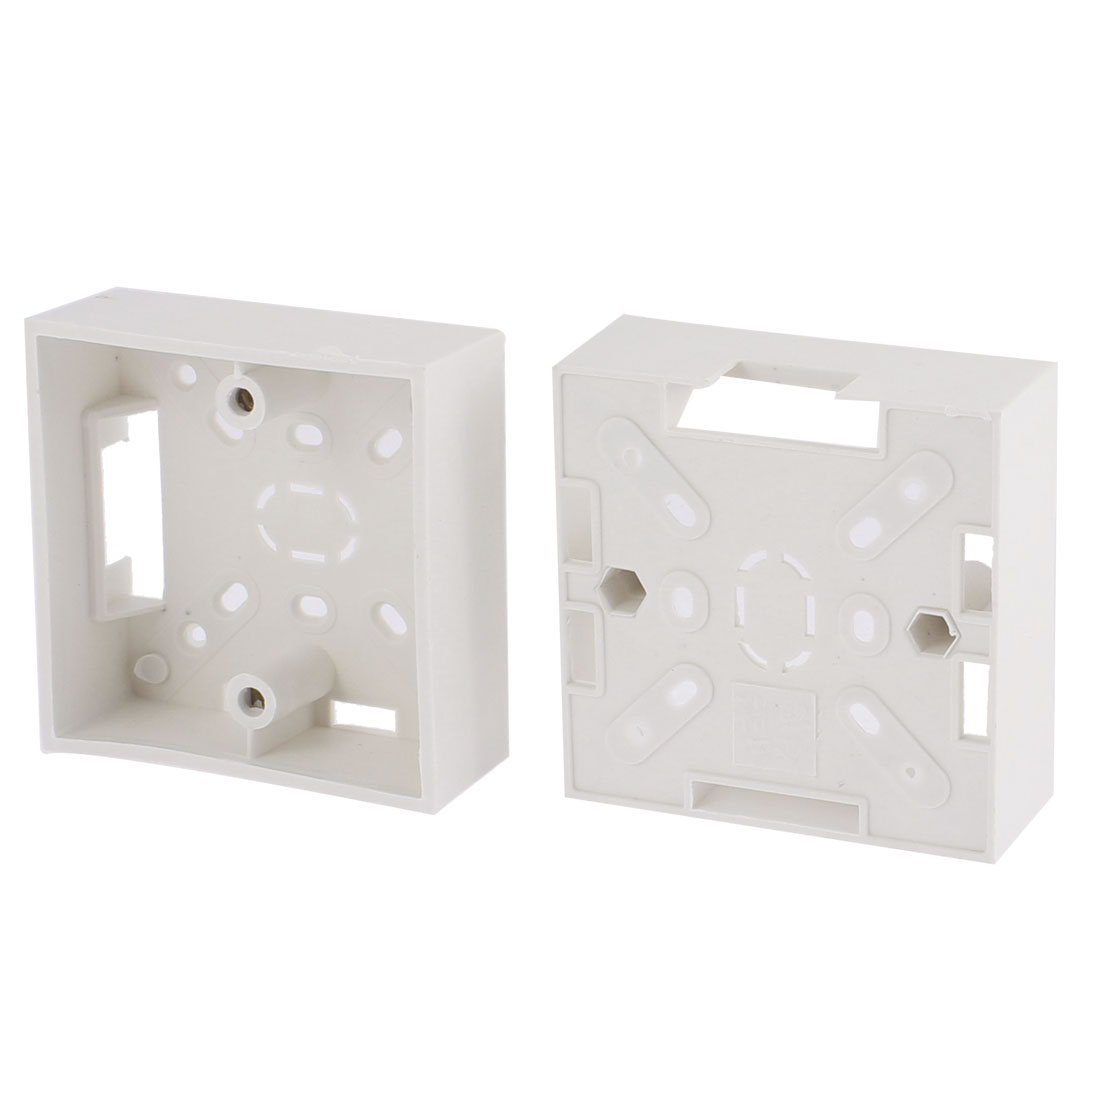 2Pcs 84mm x 84mm x 32mm White Plastic Square Mount Back Box for Wall Socket